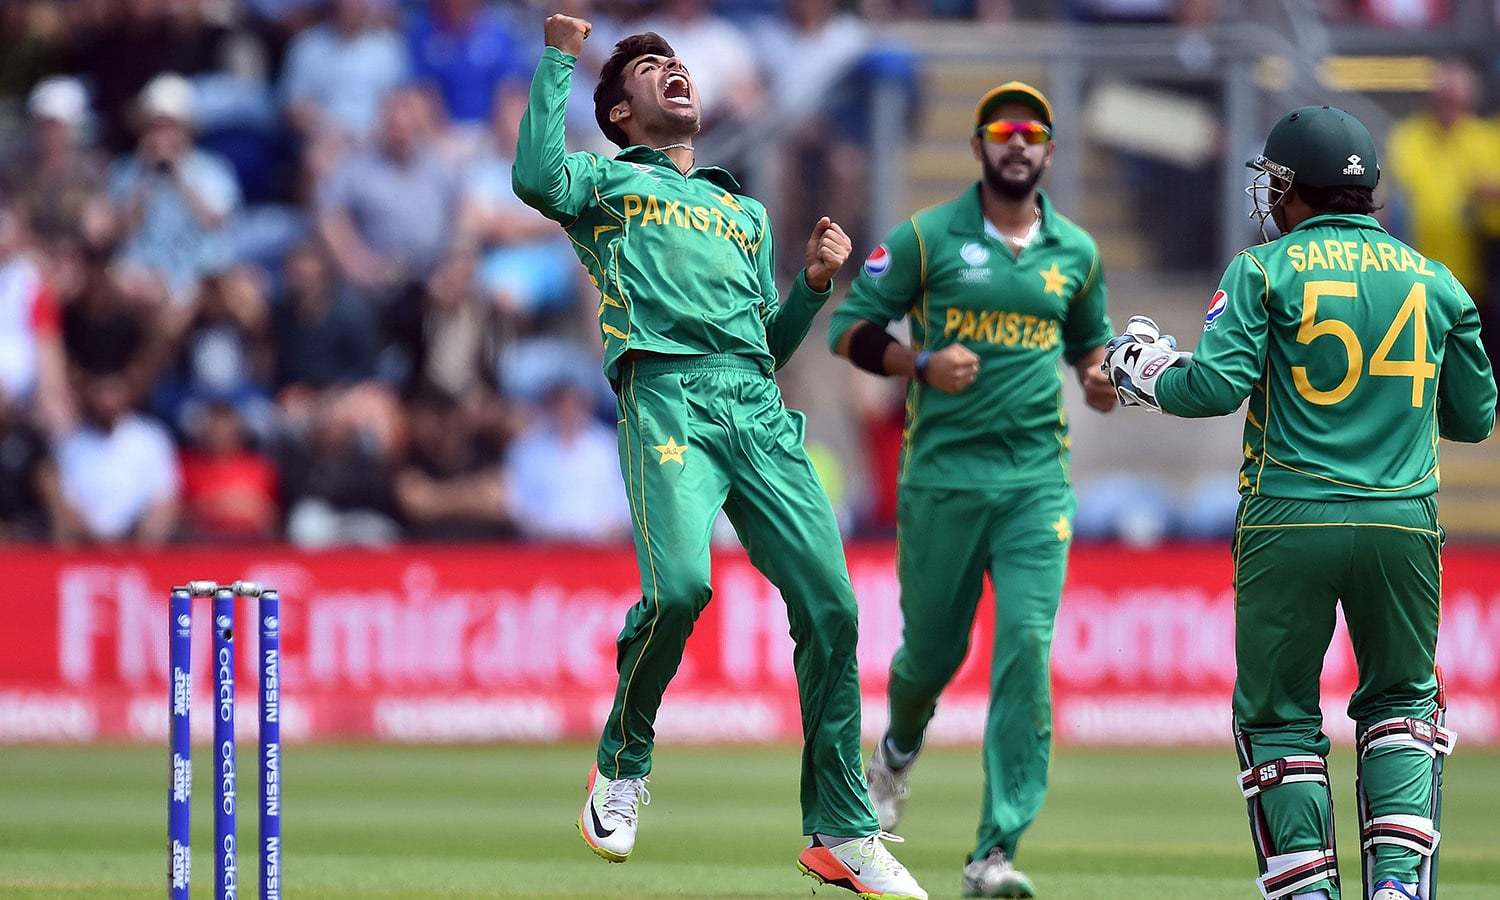 Pakistan climbs one spot in ICC ODI rankings on back of Champions Trophy wins